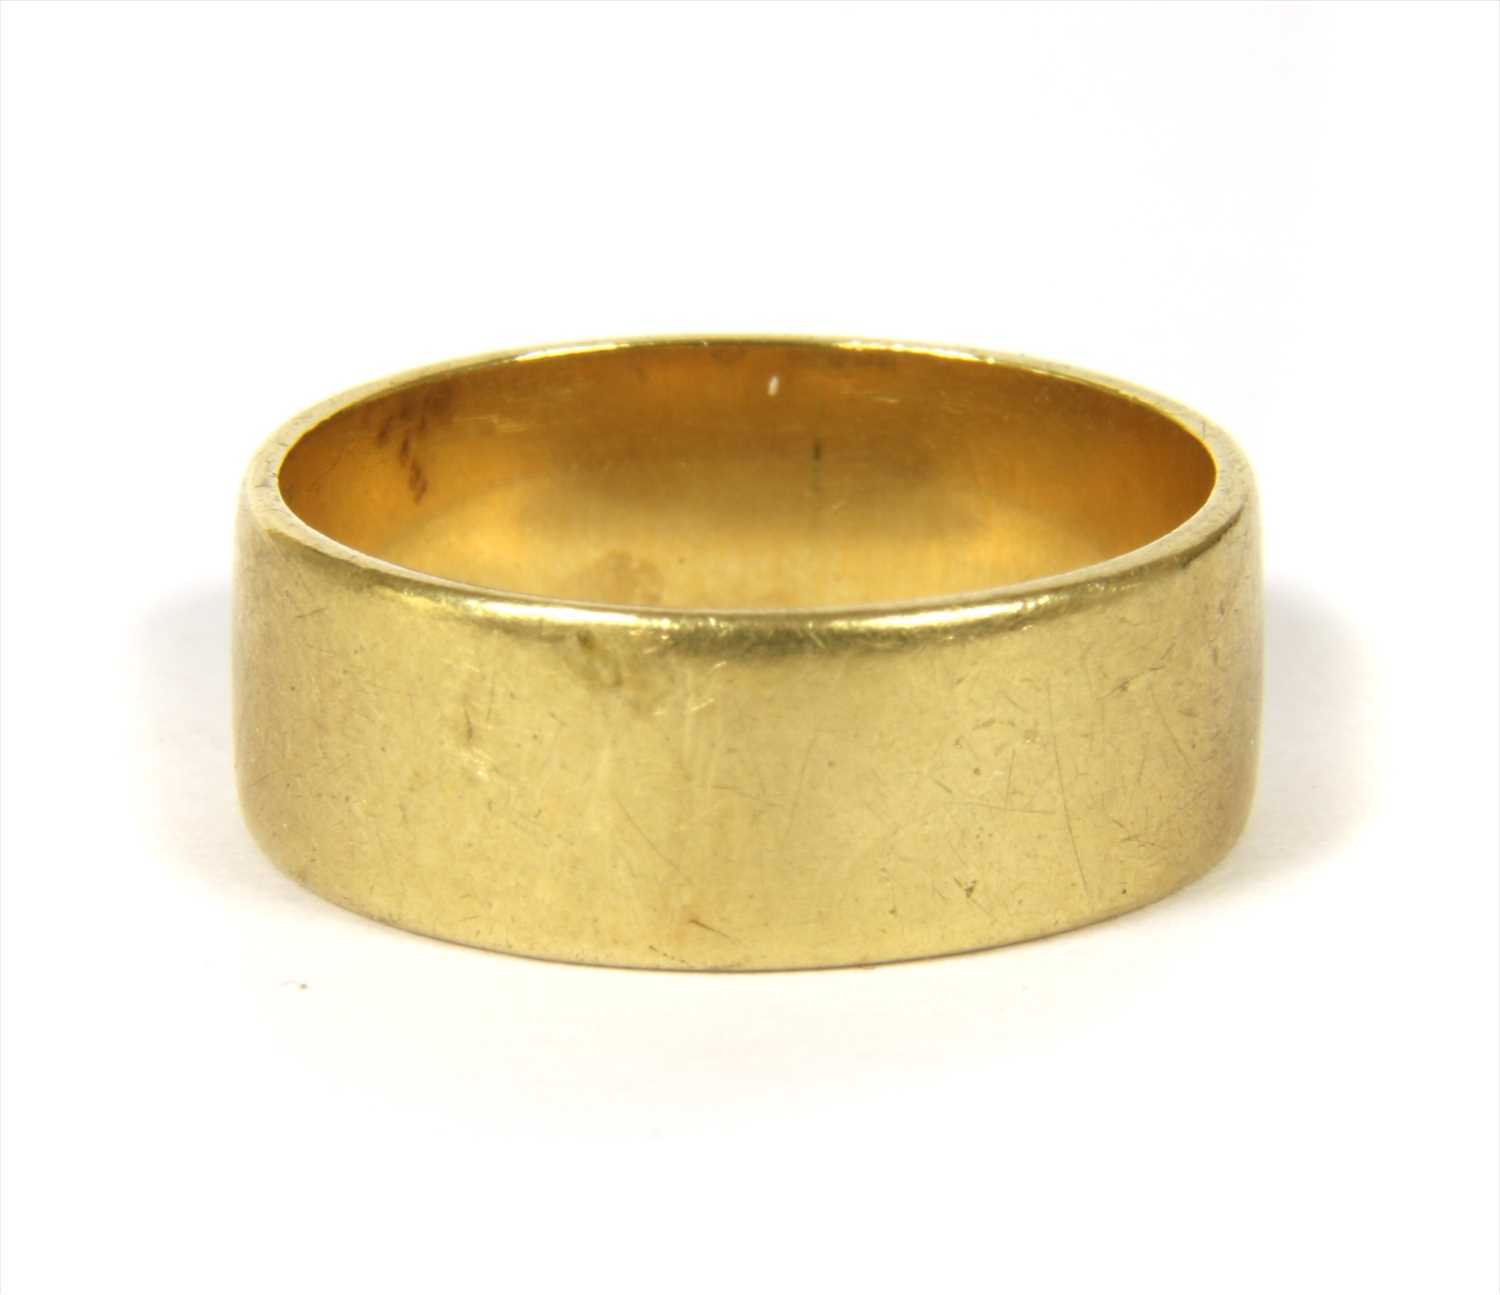 Lot 23-An 18ct gold flat section wedding ring